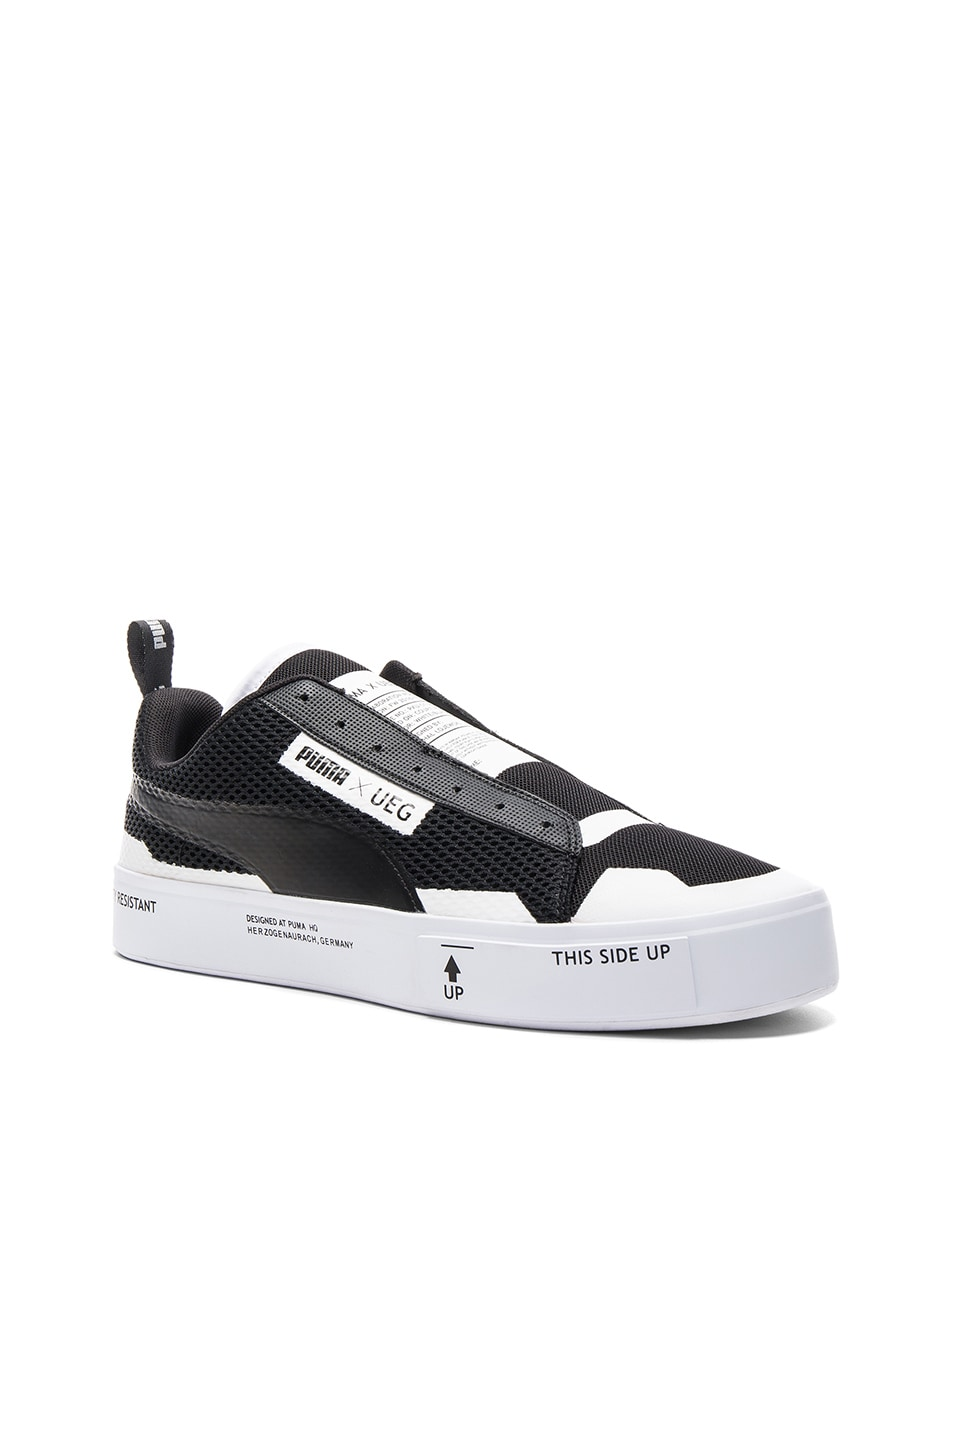 3d338ad24a97 Image 1 of Puma Select x UEG Court Play Slip Ons in Black   White